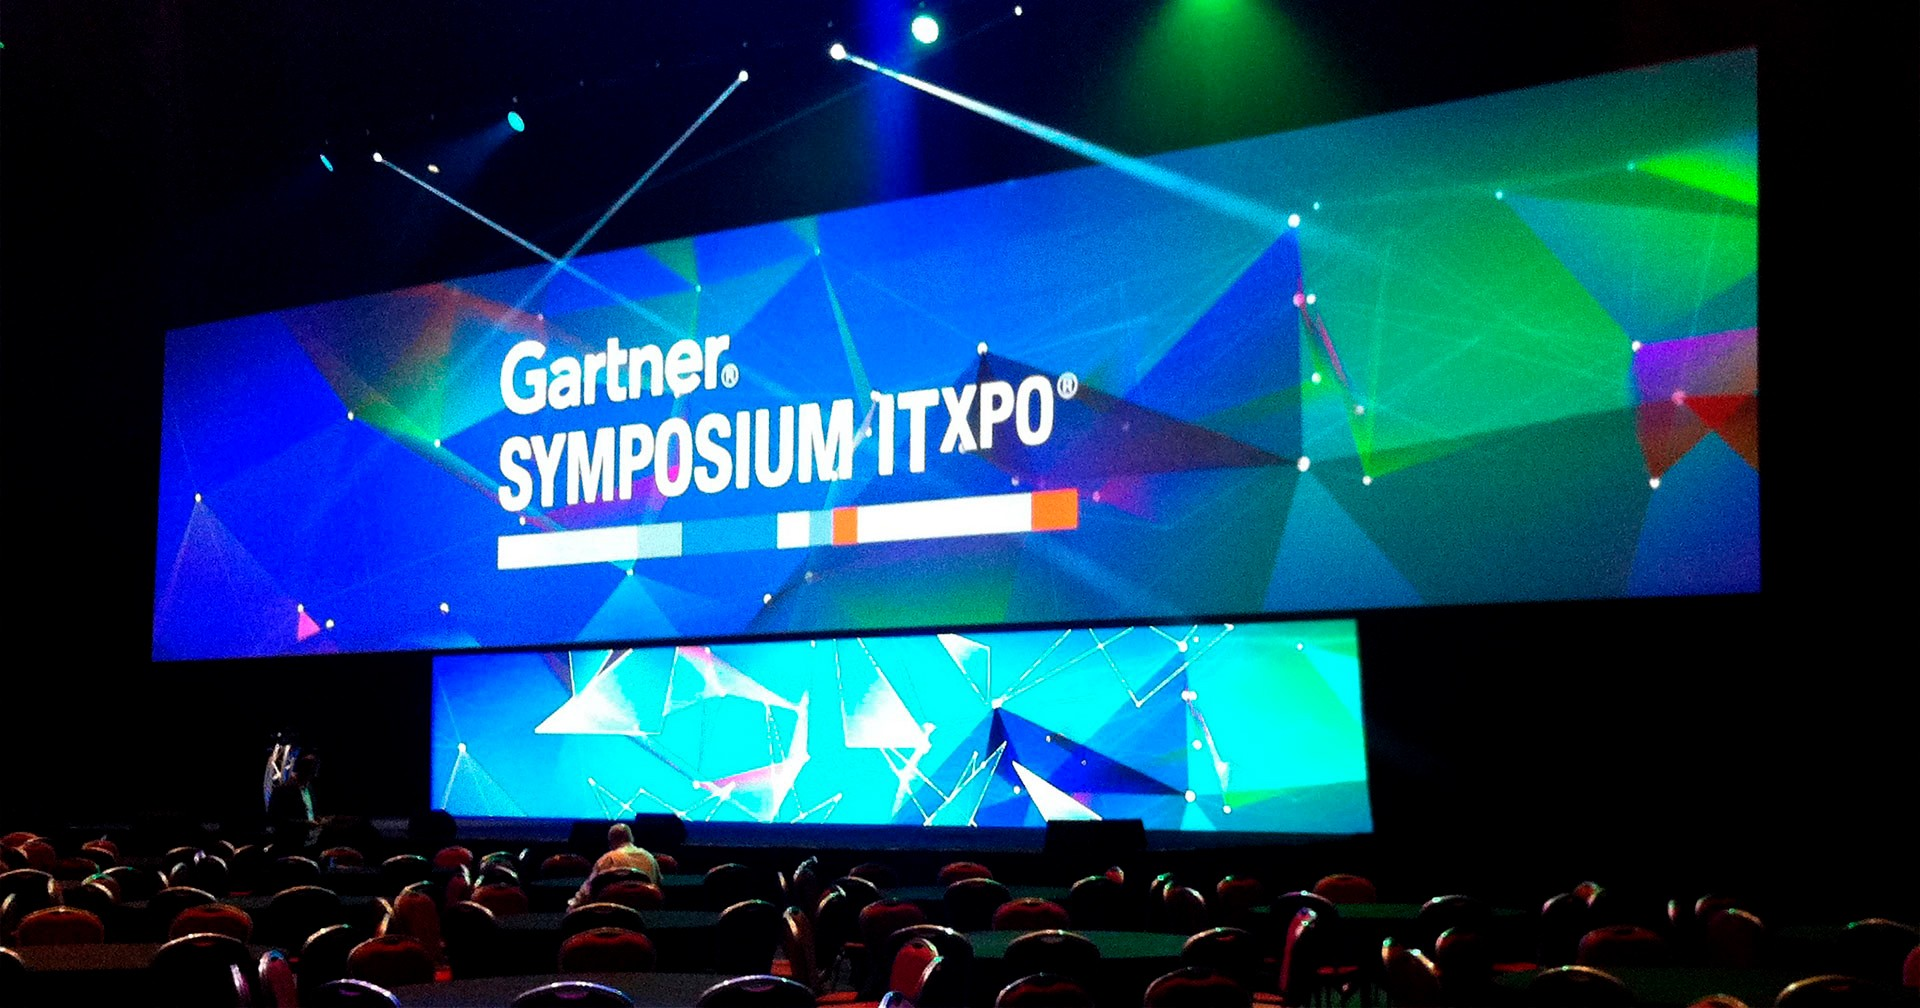 Os principais insights do Gartner Symposium para 2019